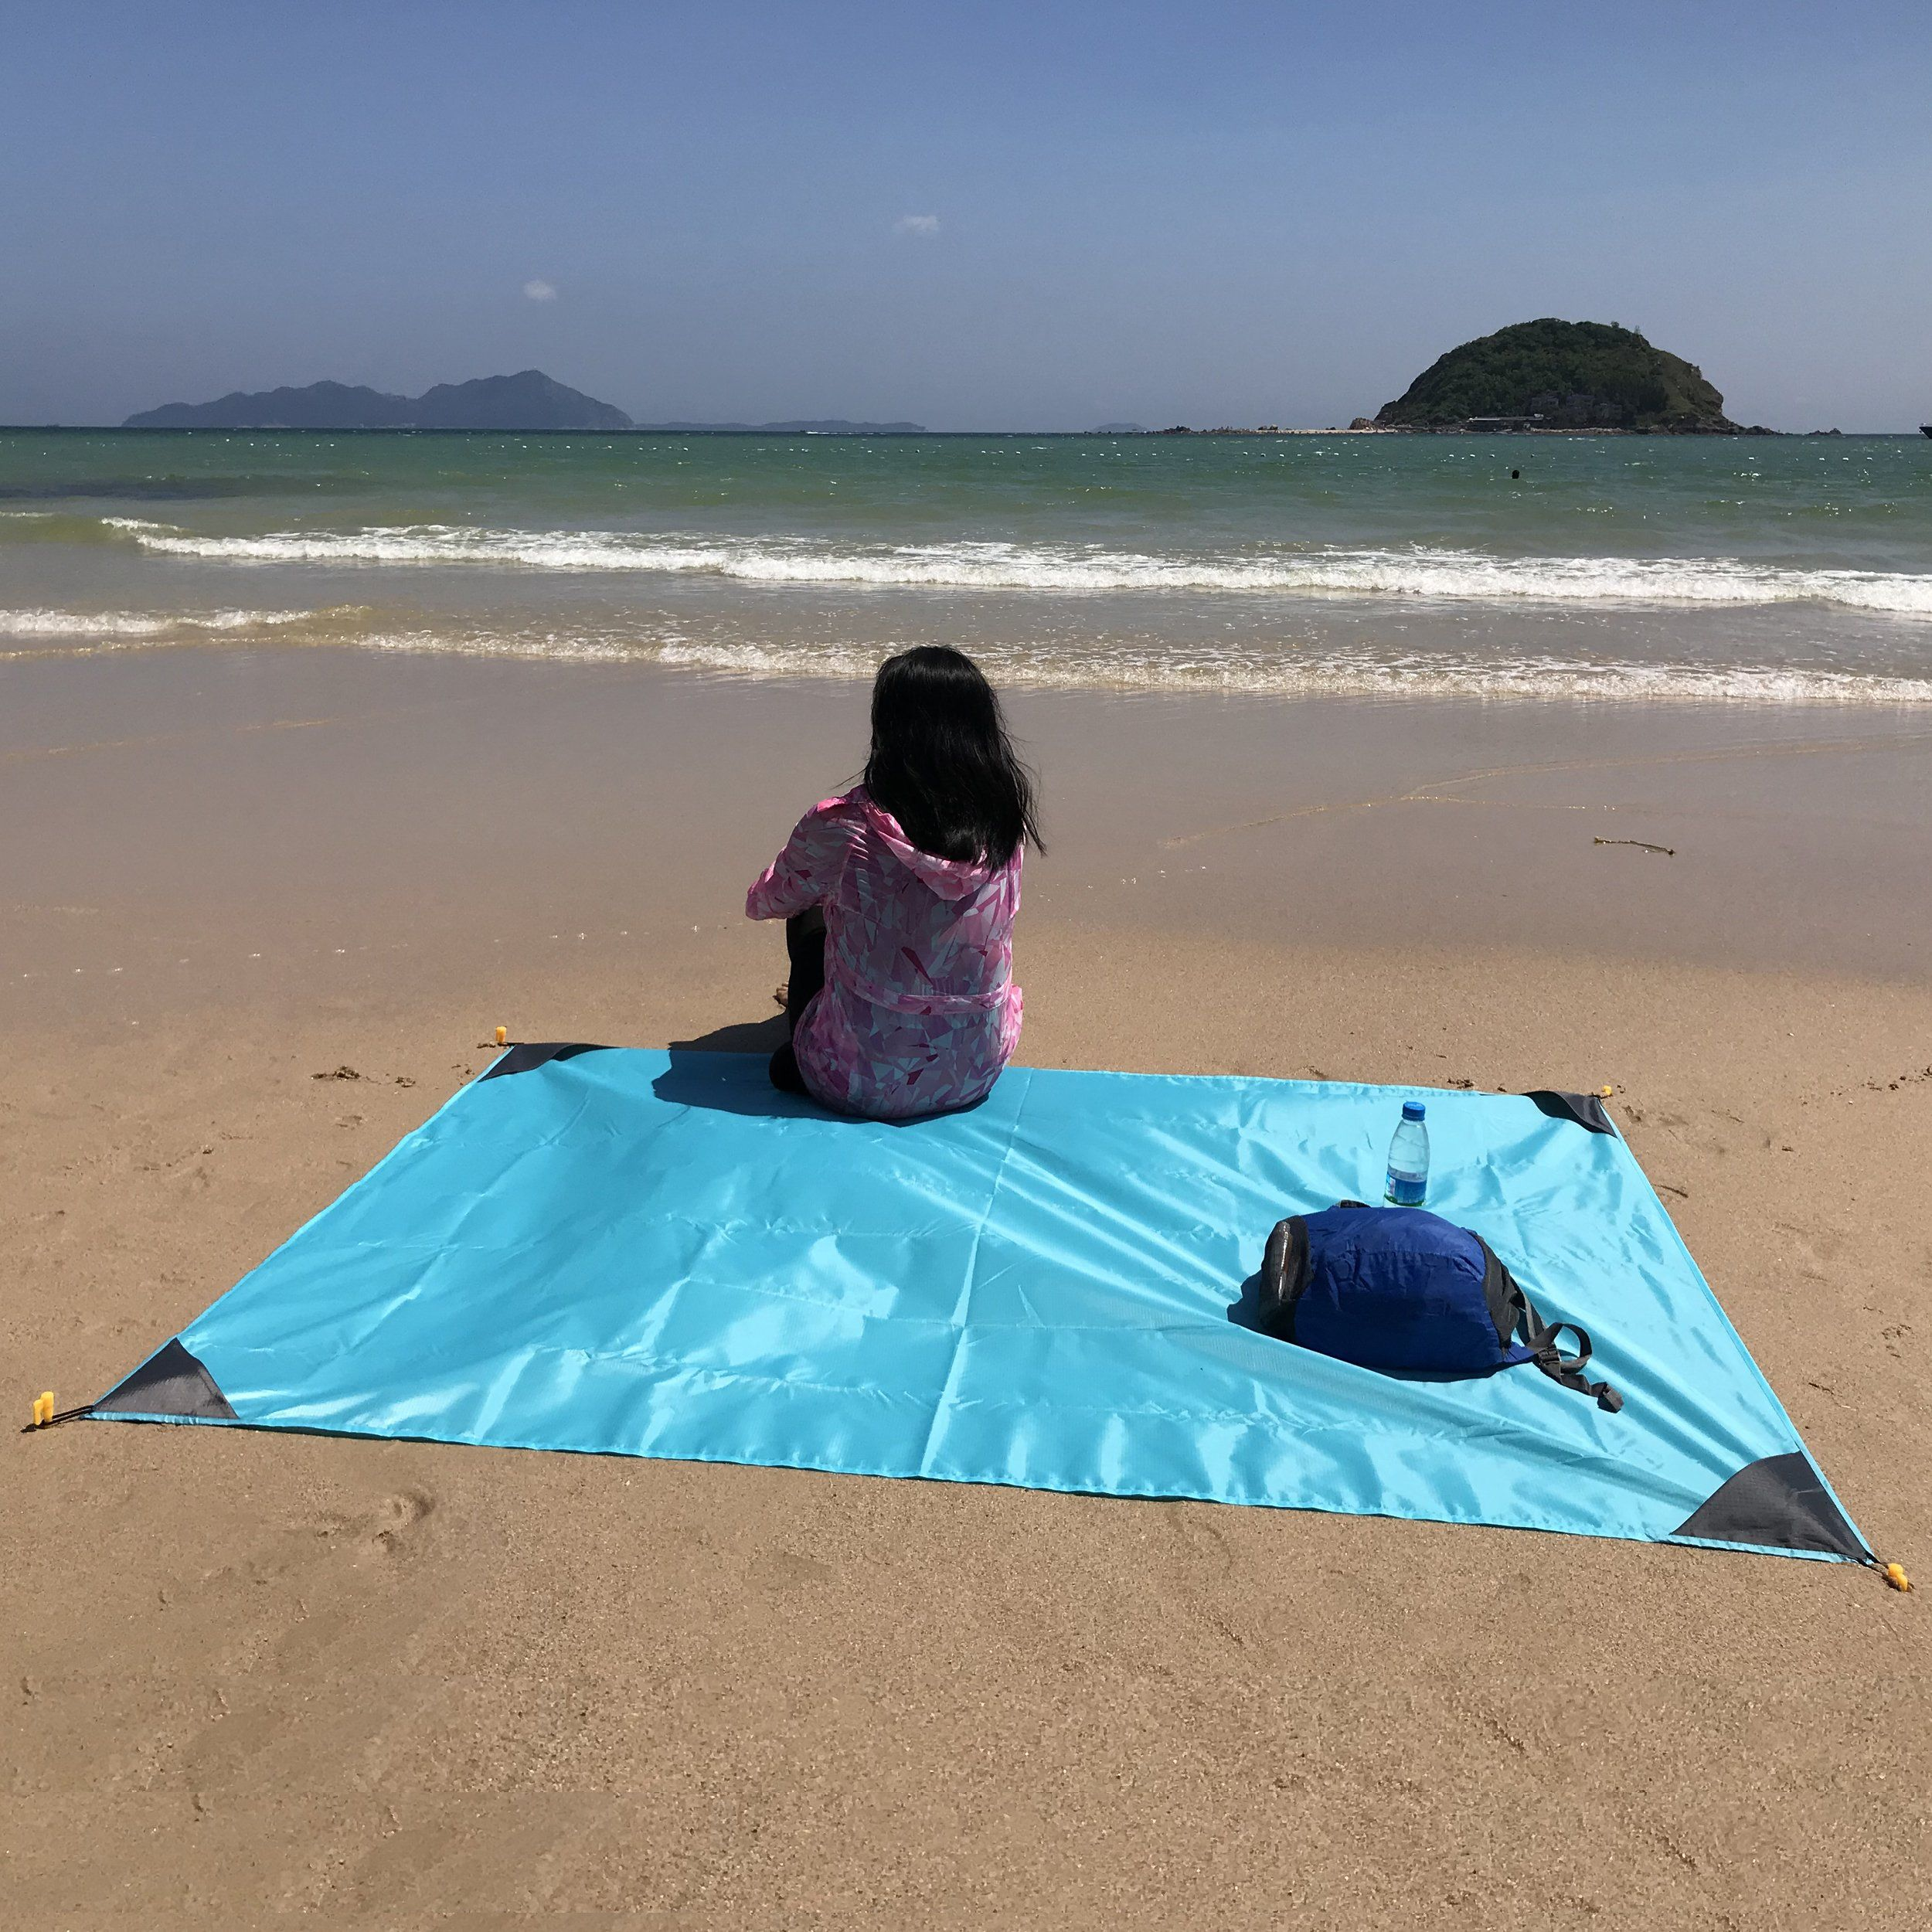 Family Beach Blanket: Large Beach Blanket, Portable Sand Resistant Waterproof